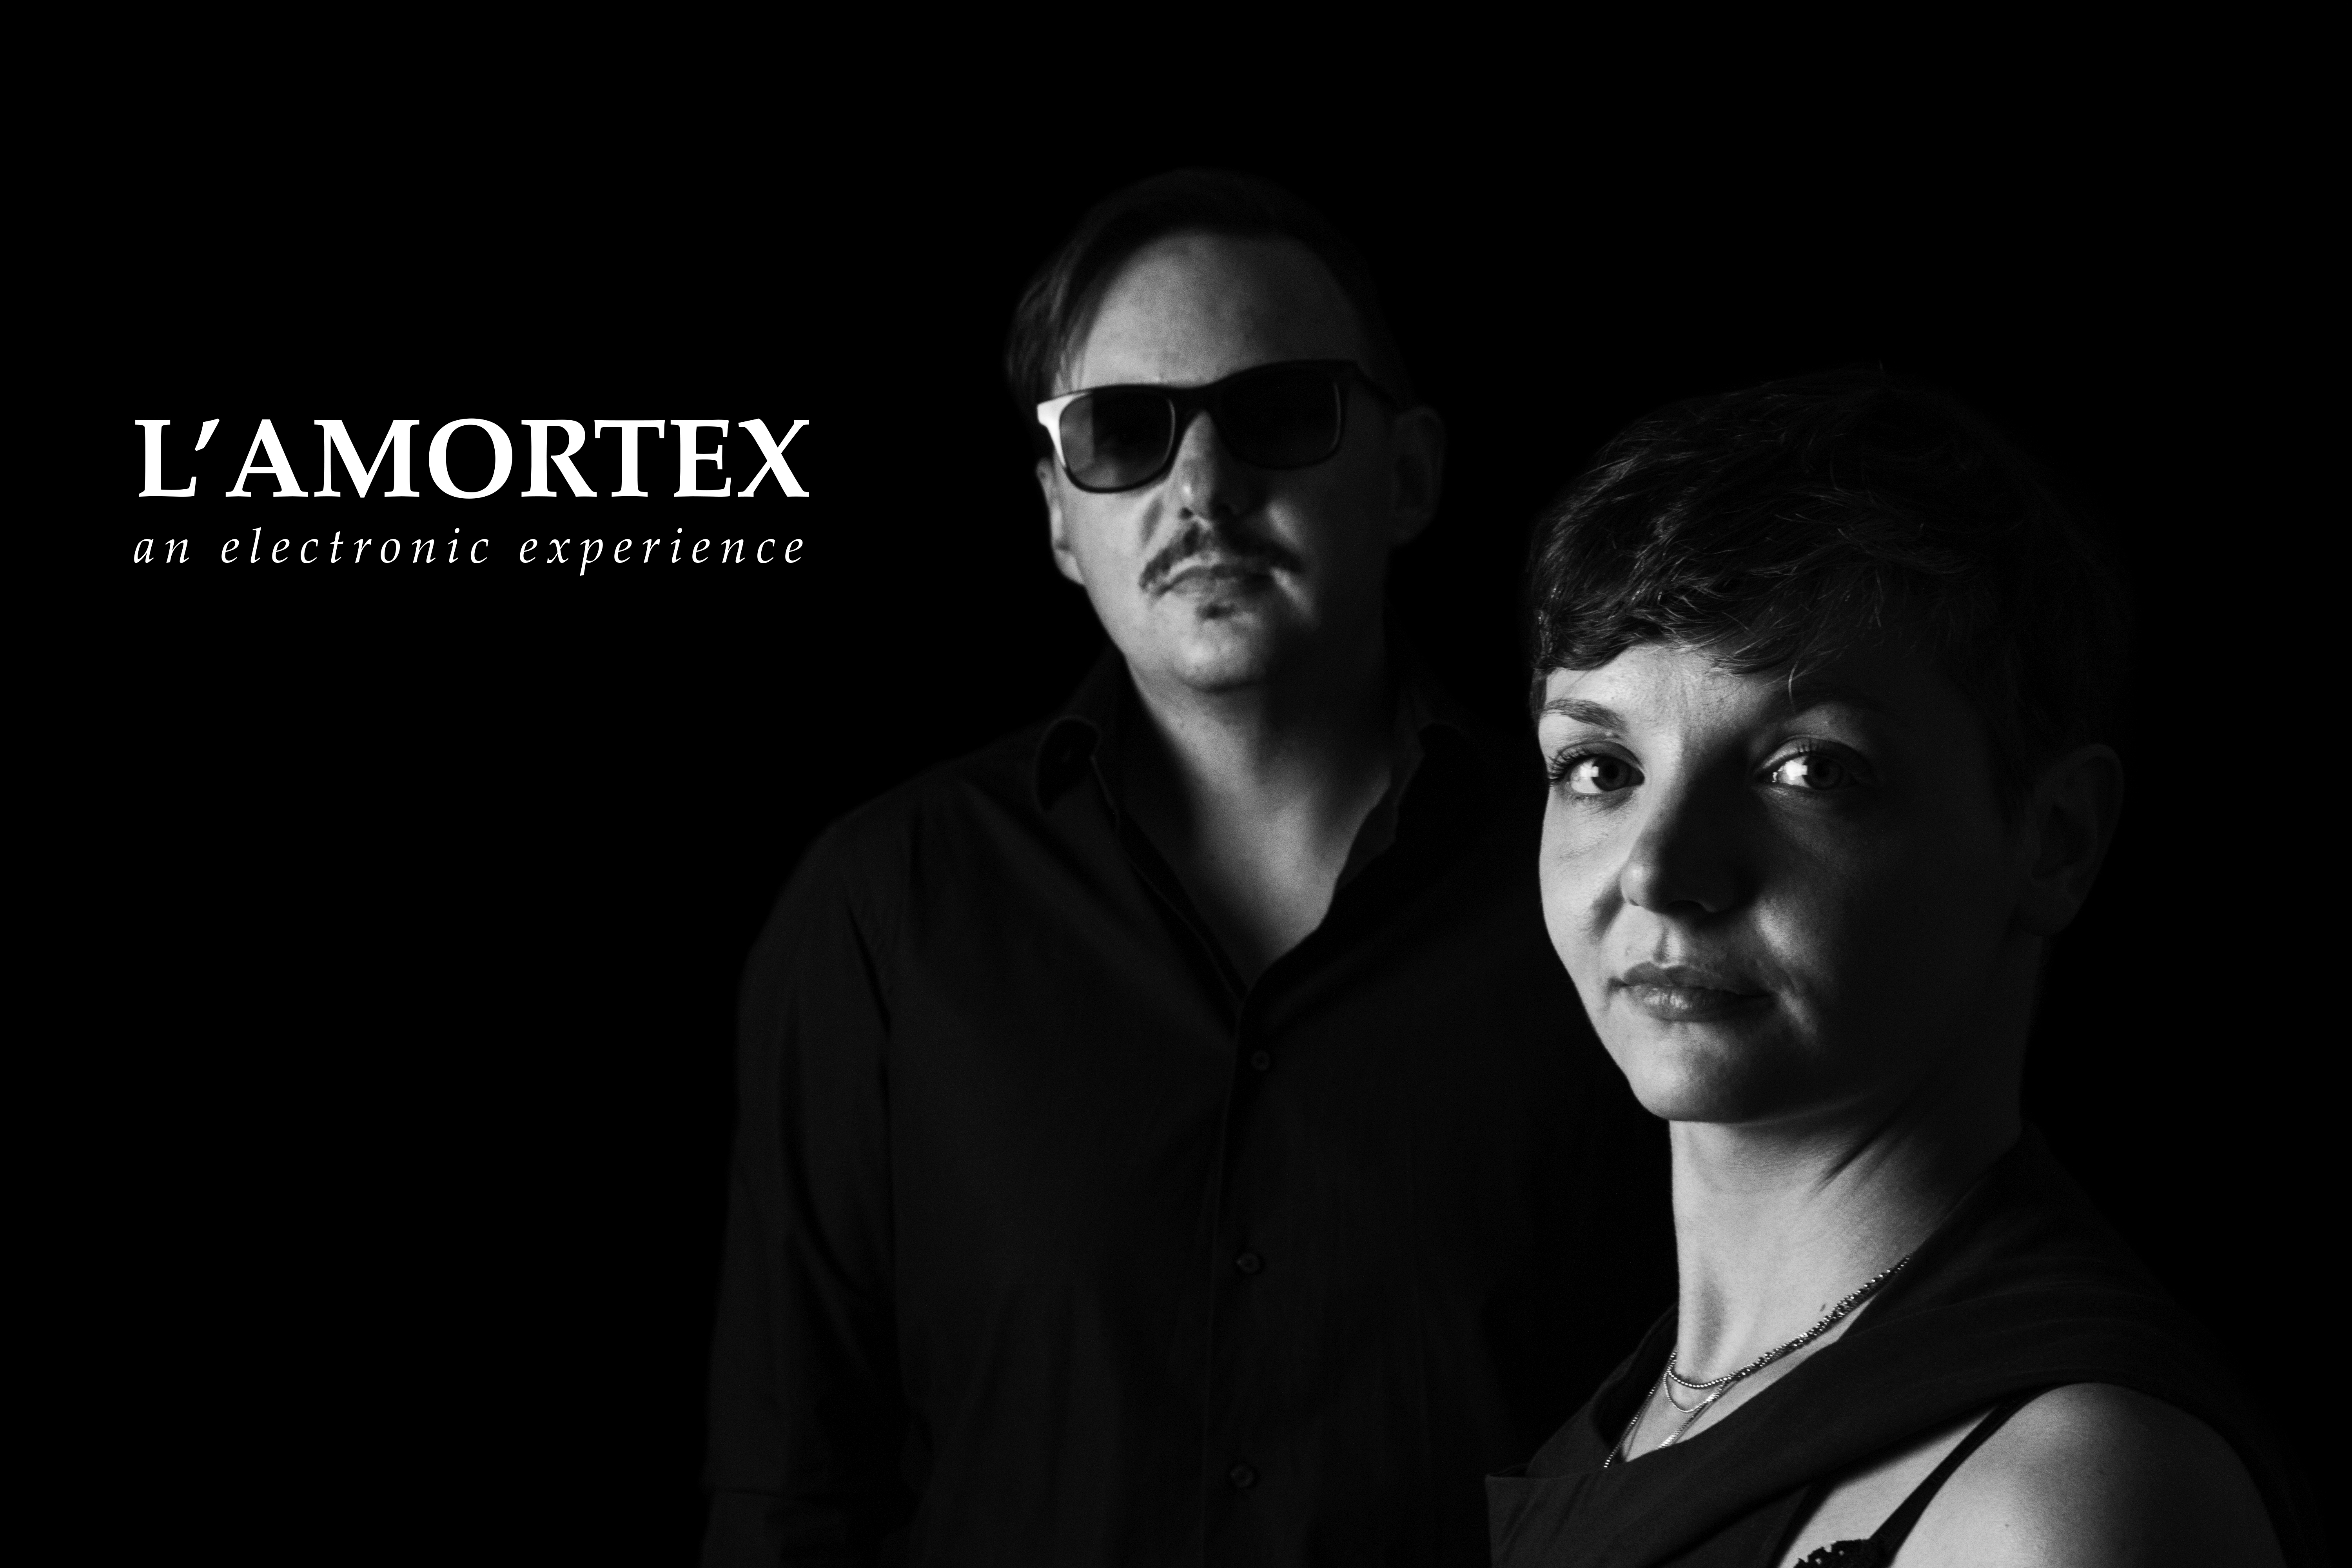 L'Amortex – An electronic experience live